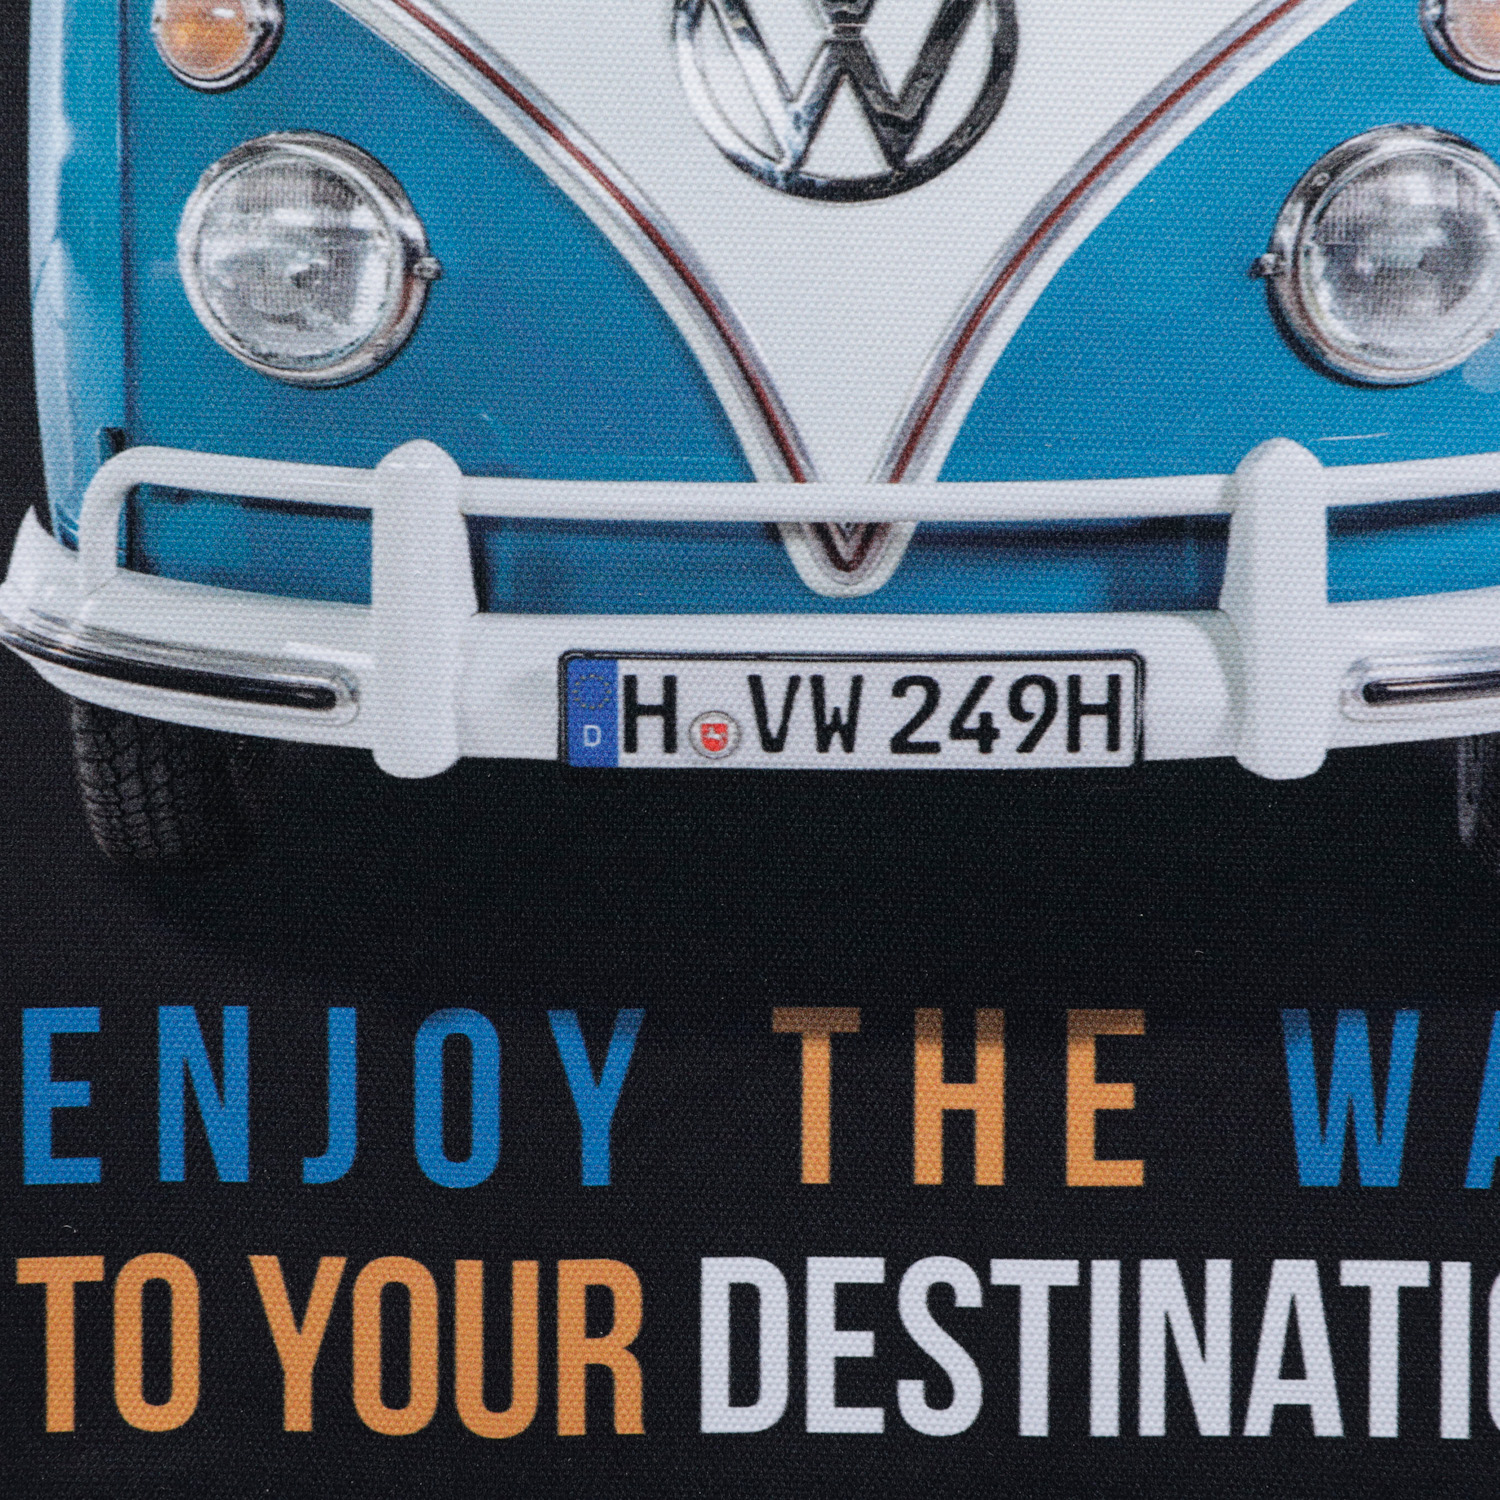 Tela Vw Kombi Enjoy The Way Fd Preto 40 x 1.5 x 30 cm